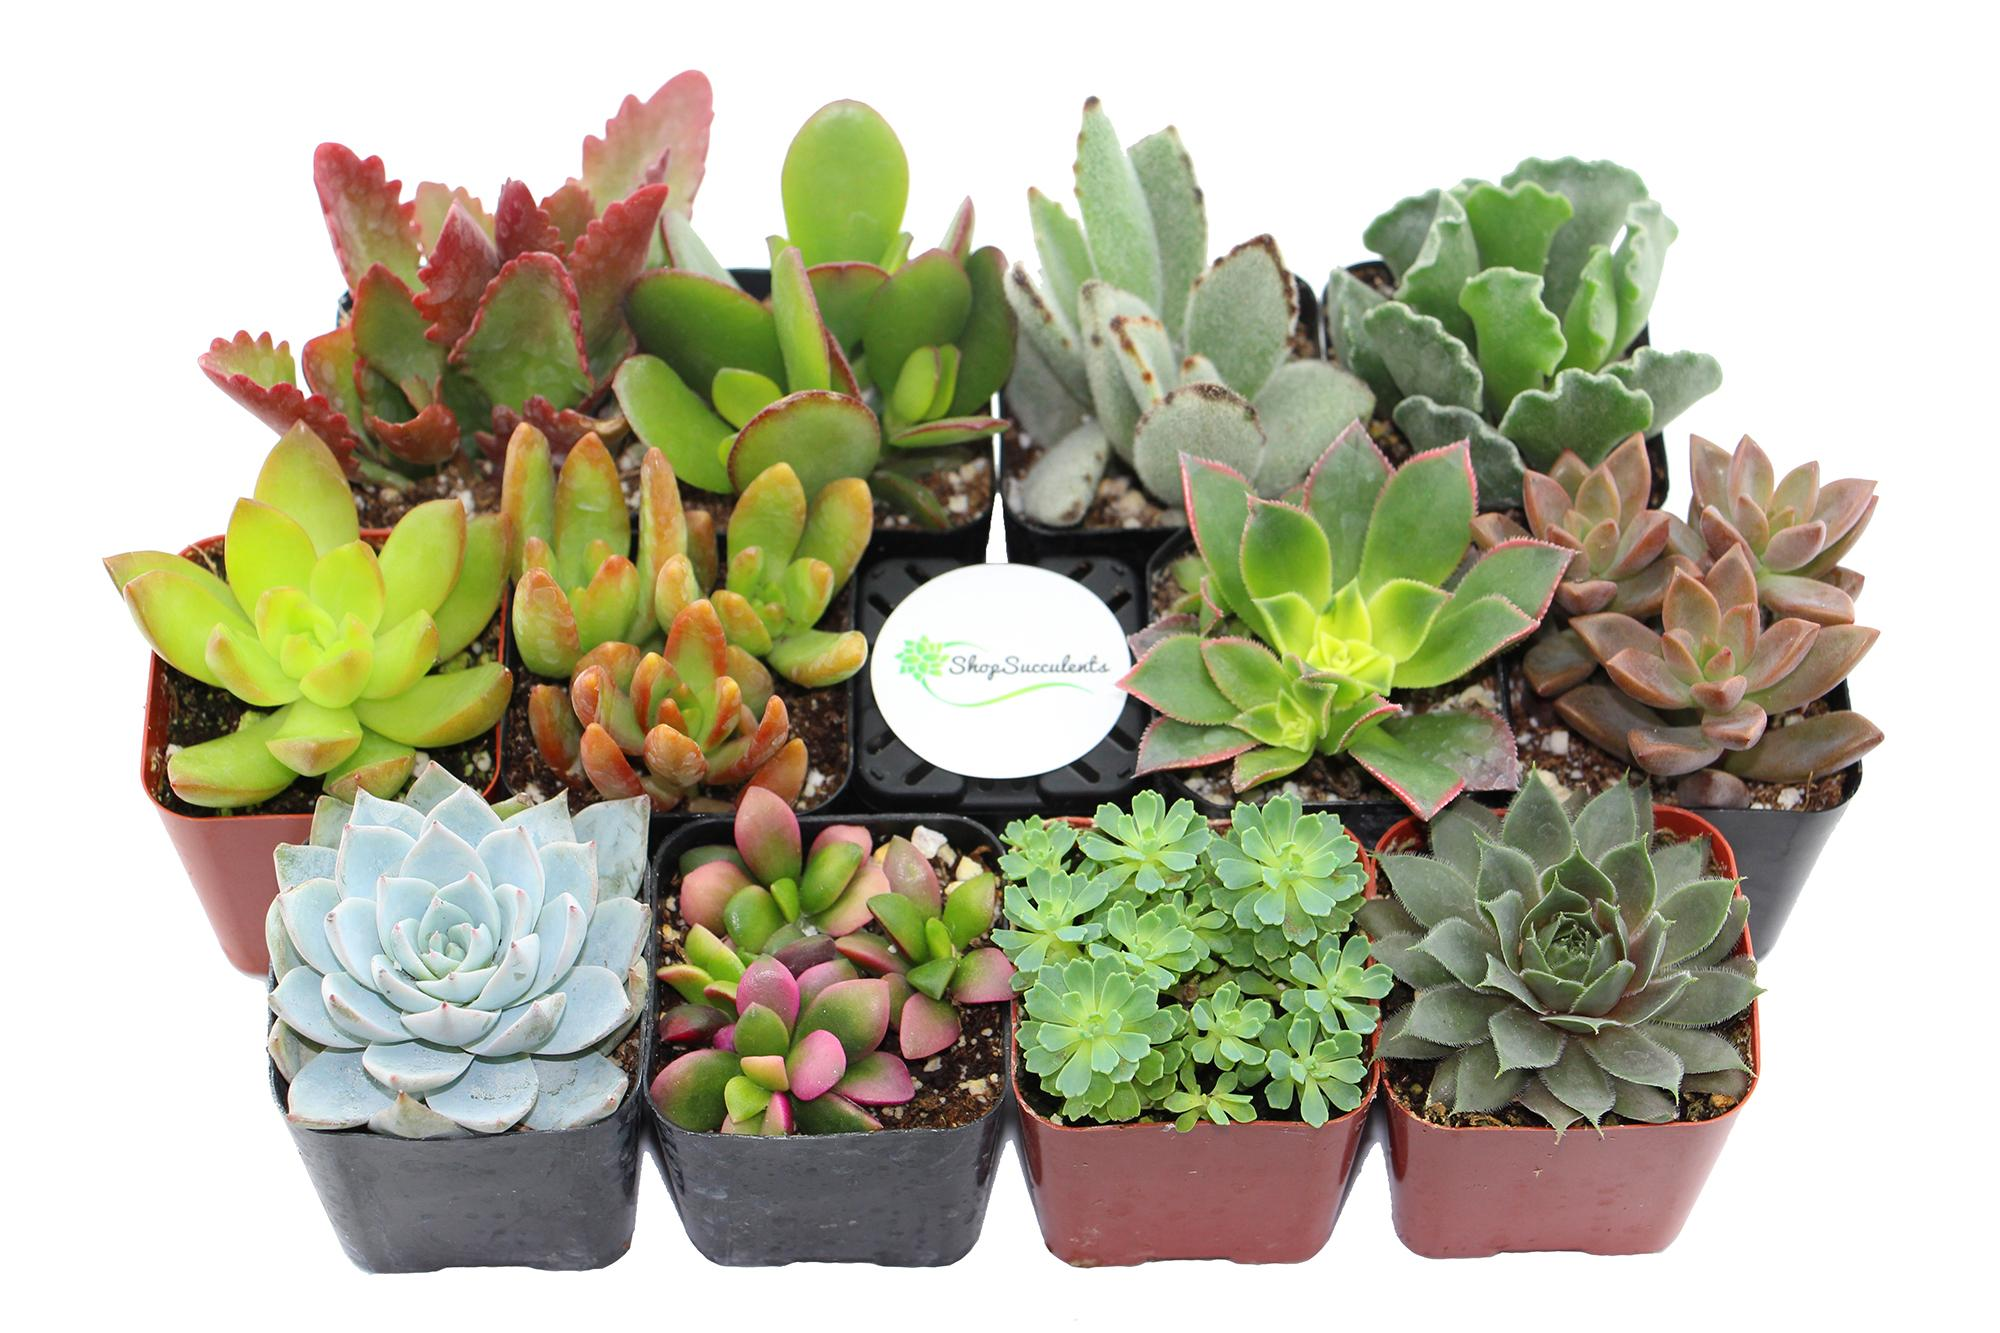 Shade Succulents: Guía para el jardín resistente a la sequía | INSTALL-IT-DIRECT